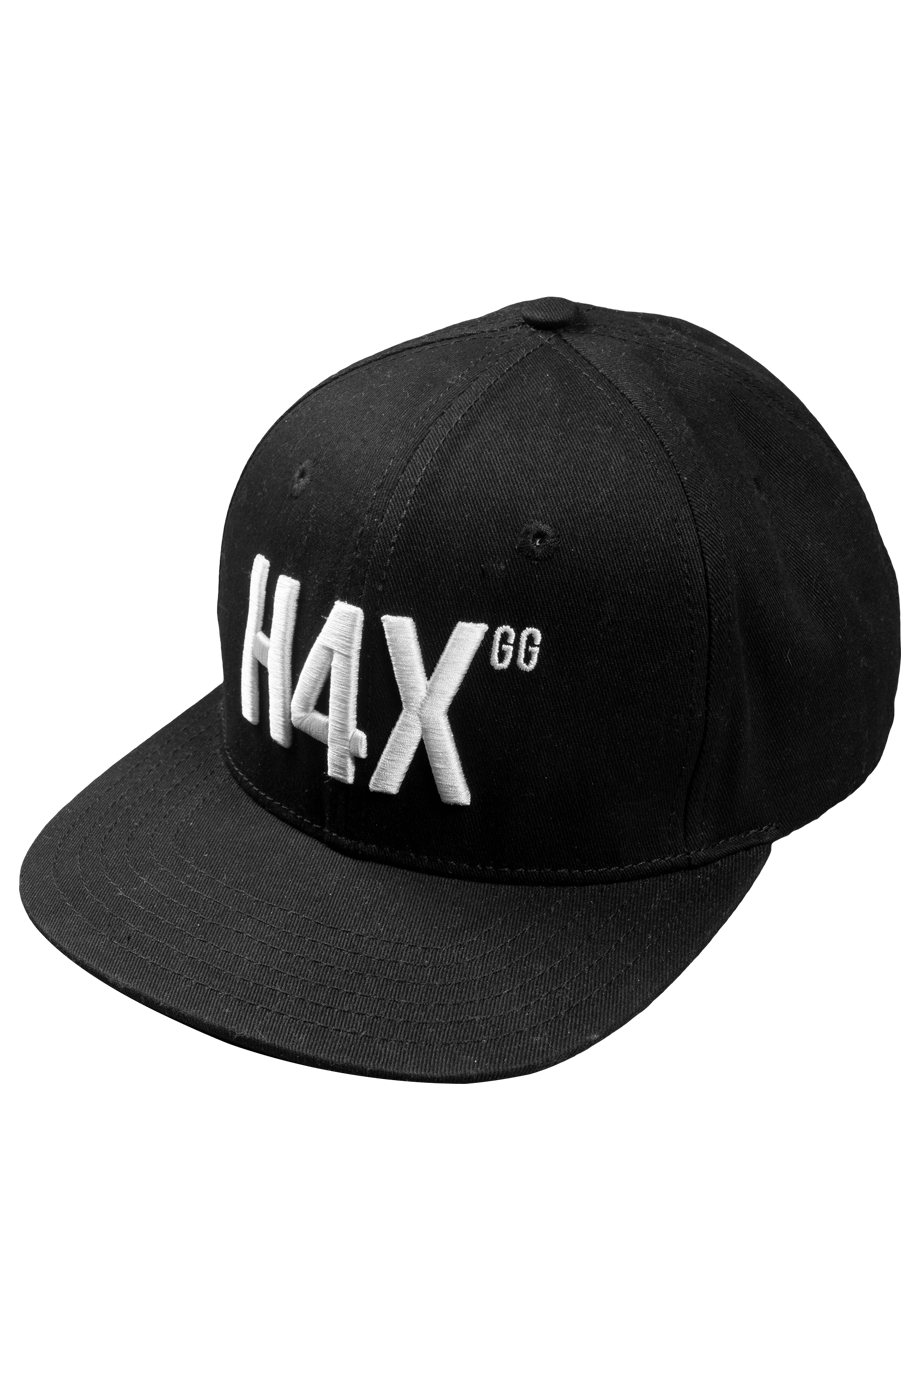 H4X Snap Hat